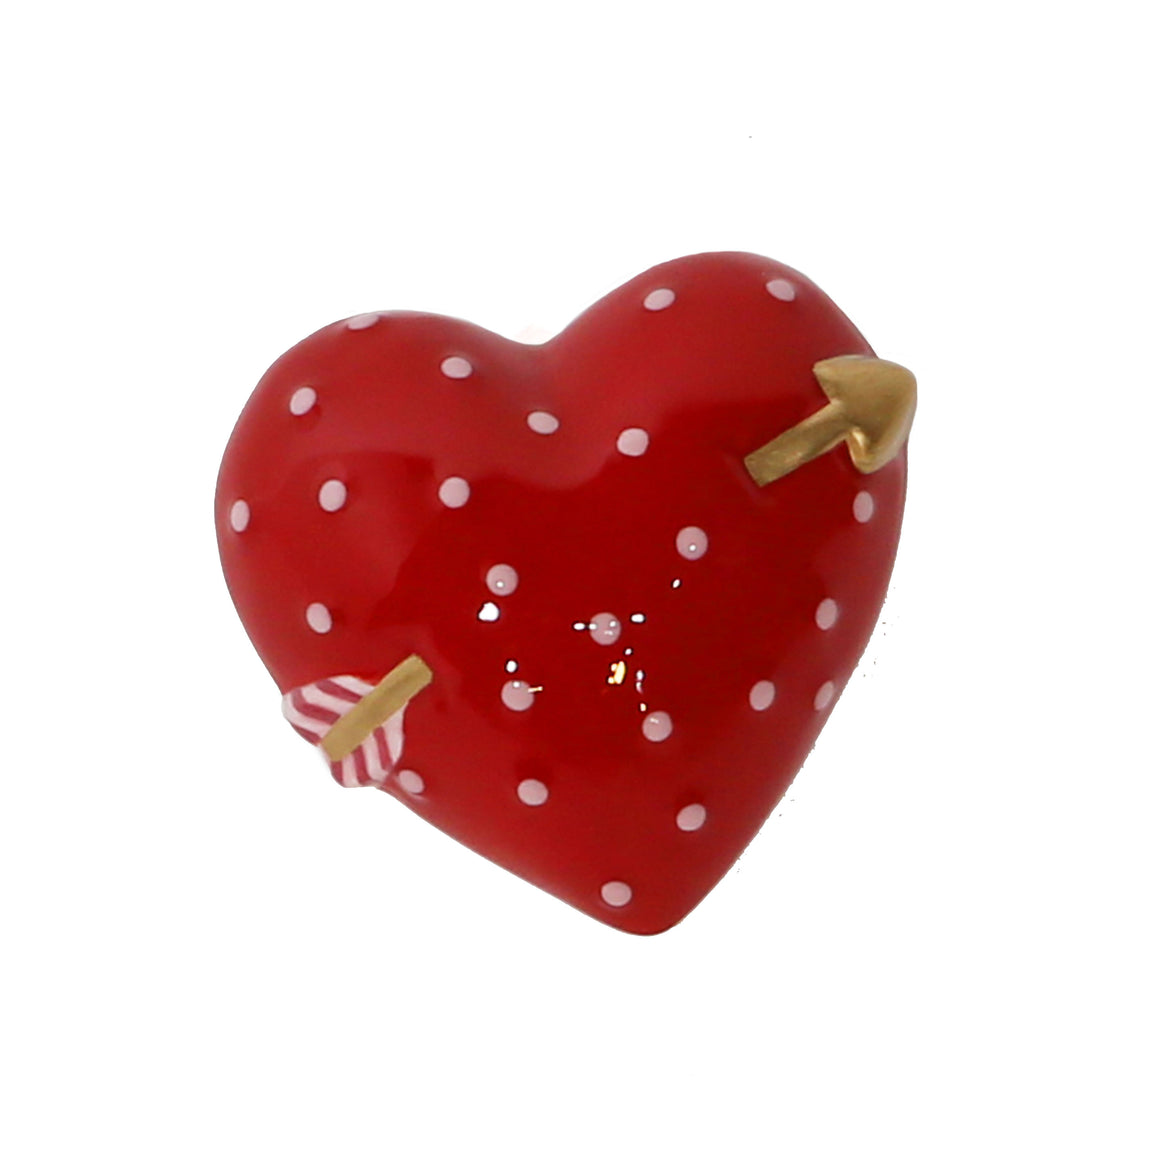 Heart Hand-Painted Ceramic Magnetic 3D Popper Topper